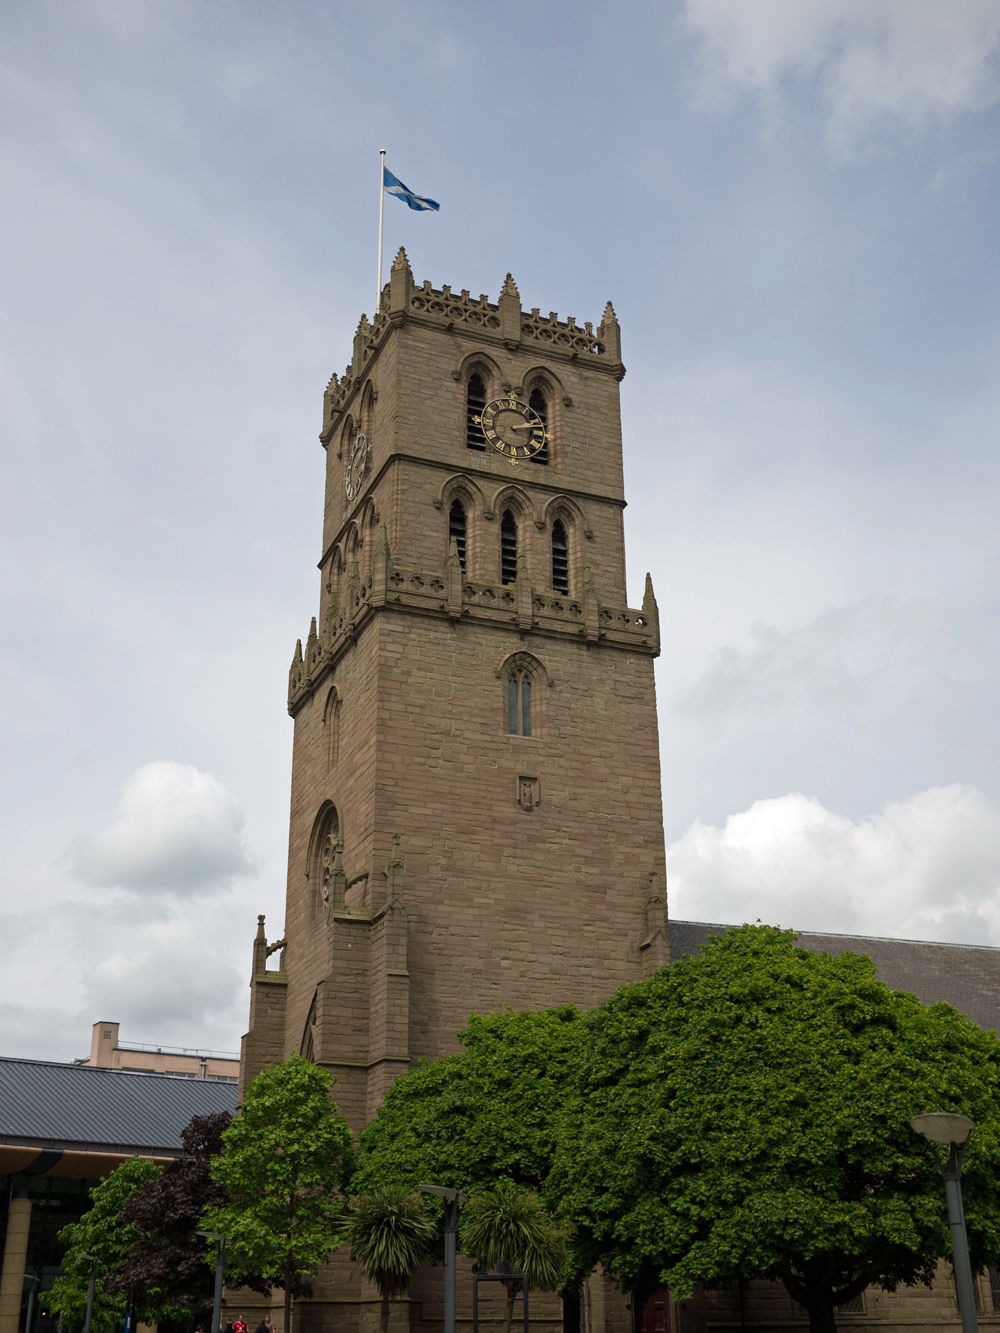 St Marys Tower, Dundee